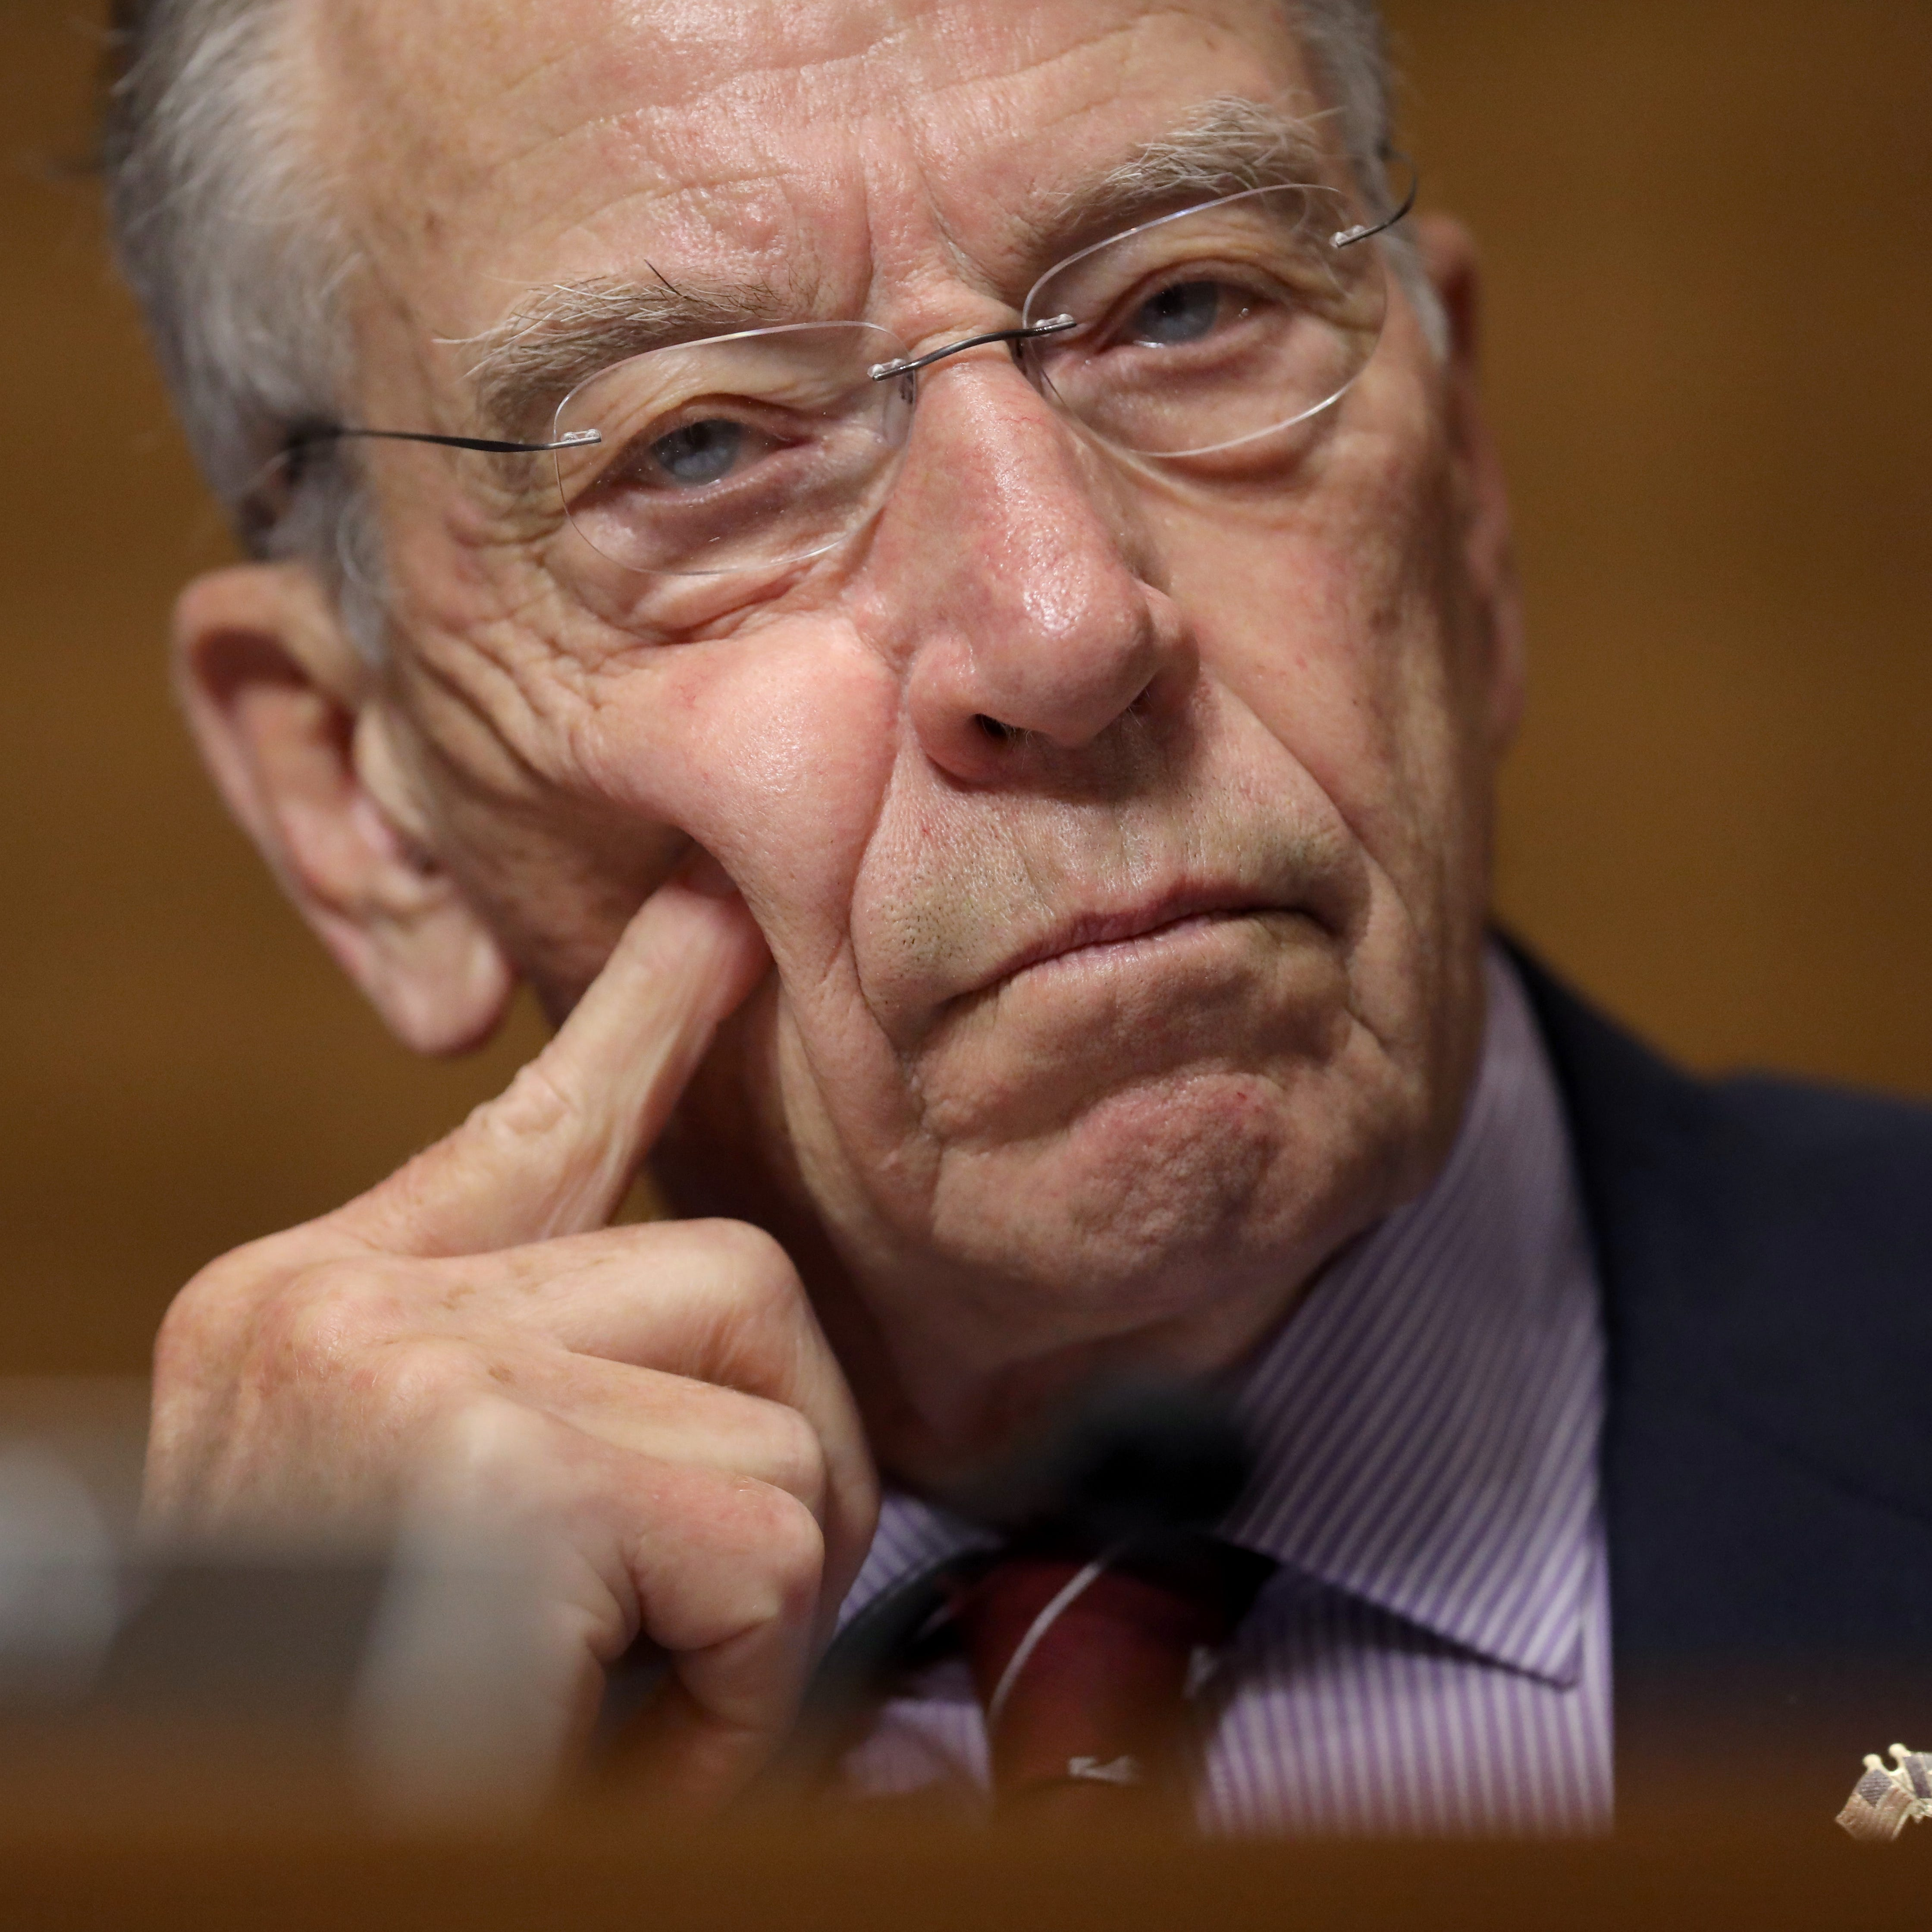 Chuck Grassley won't consider a Supreme Court nominee from President Trump in 2020